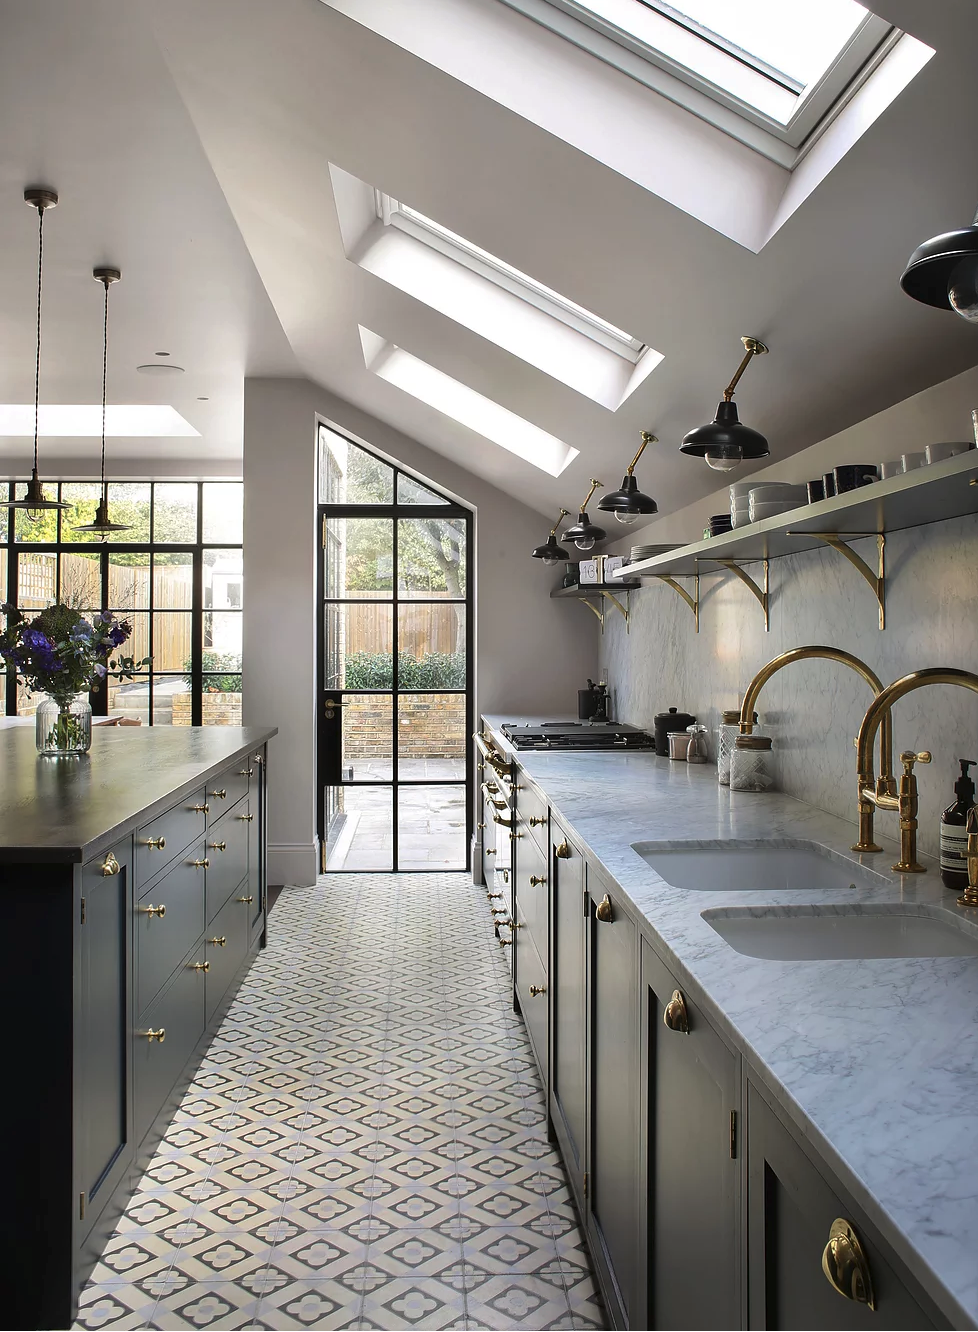 Kitchen Inspiration From Across The Pond Kitchen Ceiling Lights